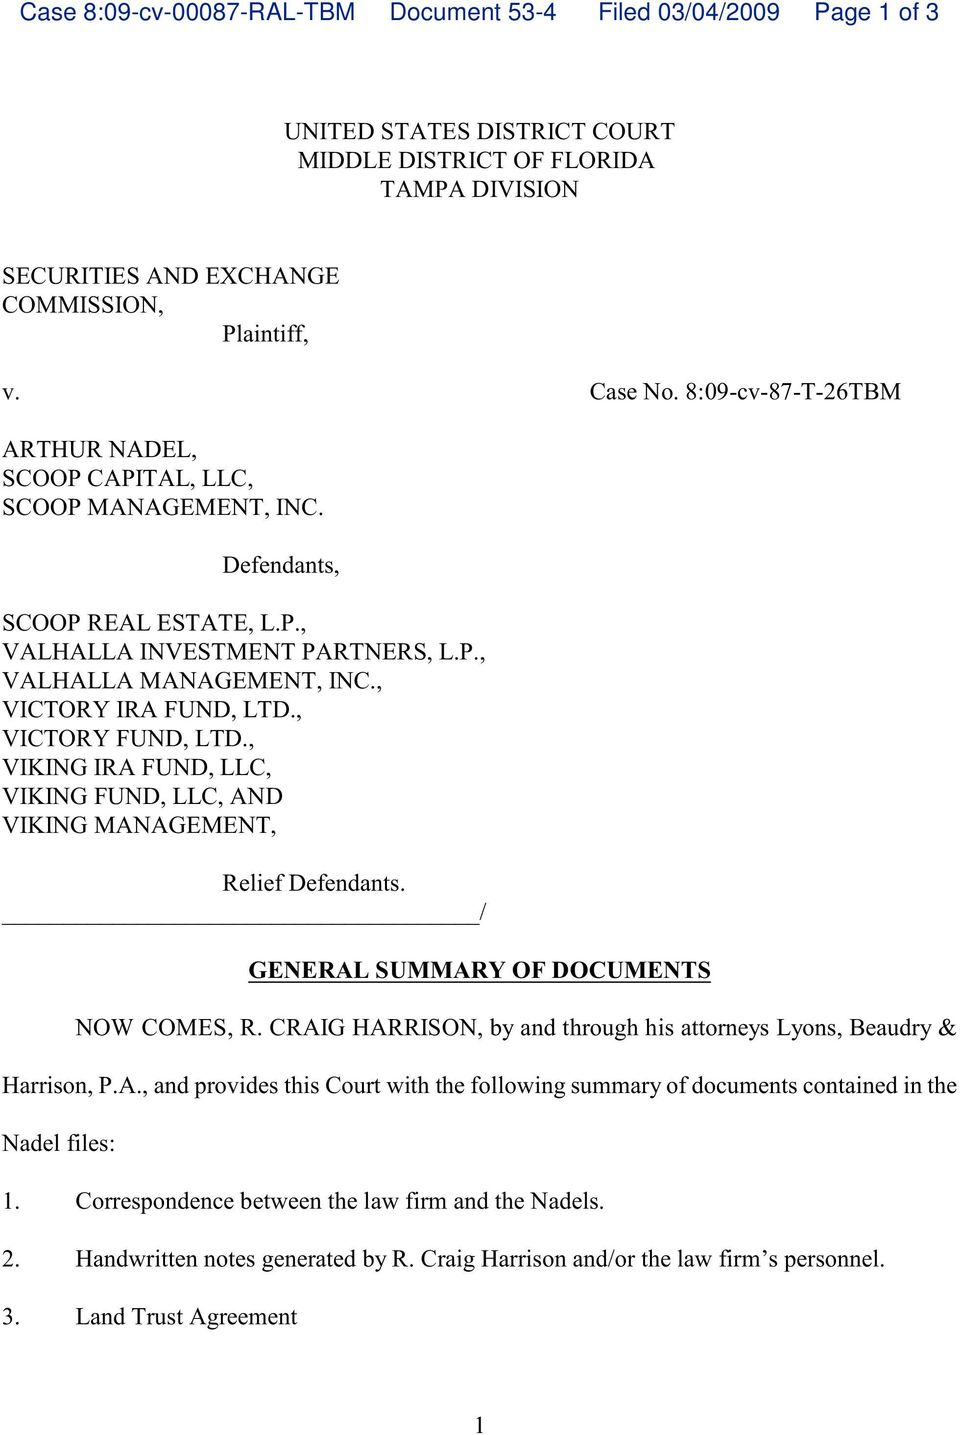 , VICTORY FUND, LTD., VIKING IRA FUND, LLC, VIKING FUND, LLC, AND VIKING MANAGEMENT, Relief Defendants. / GENERAL SUMMARY OF DOCUMENTS NOW COMES, R.